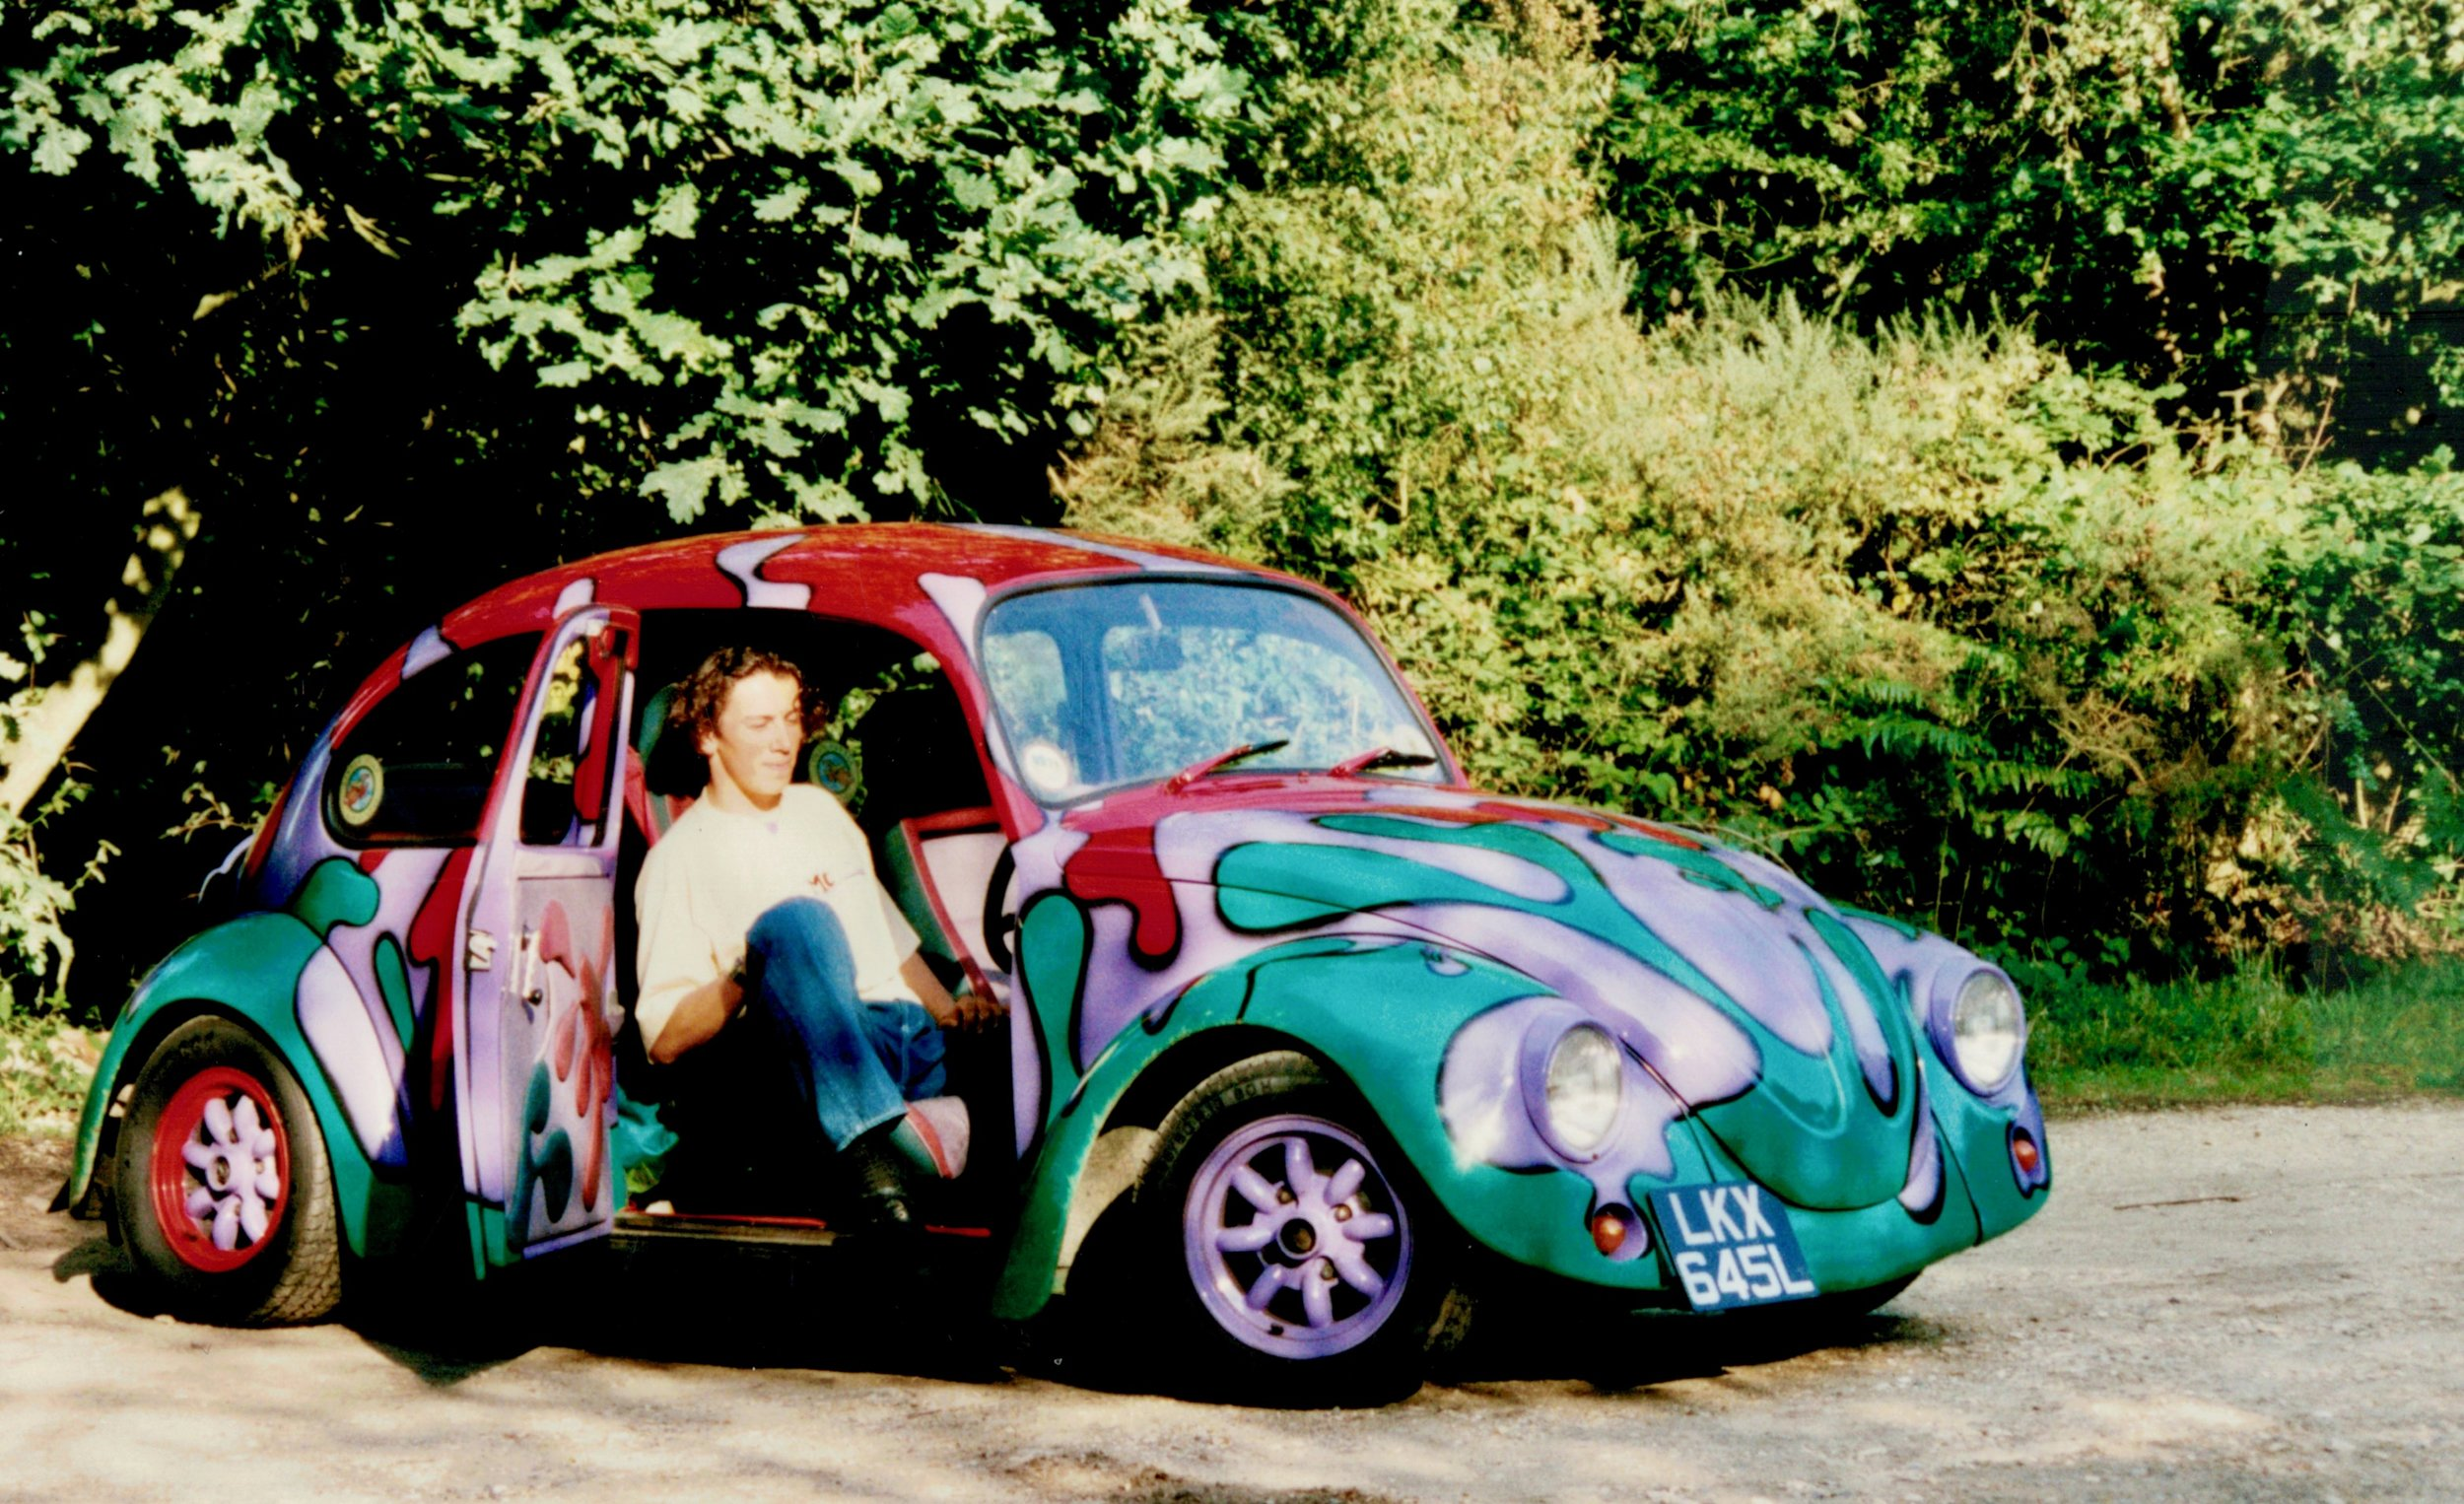 He missed the 60's so re-lived them in 1992, by building and painting this one himself!